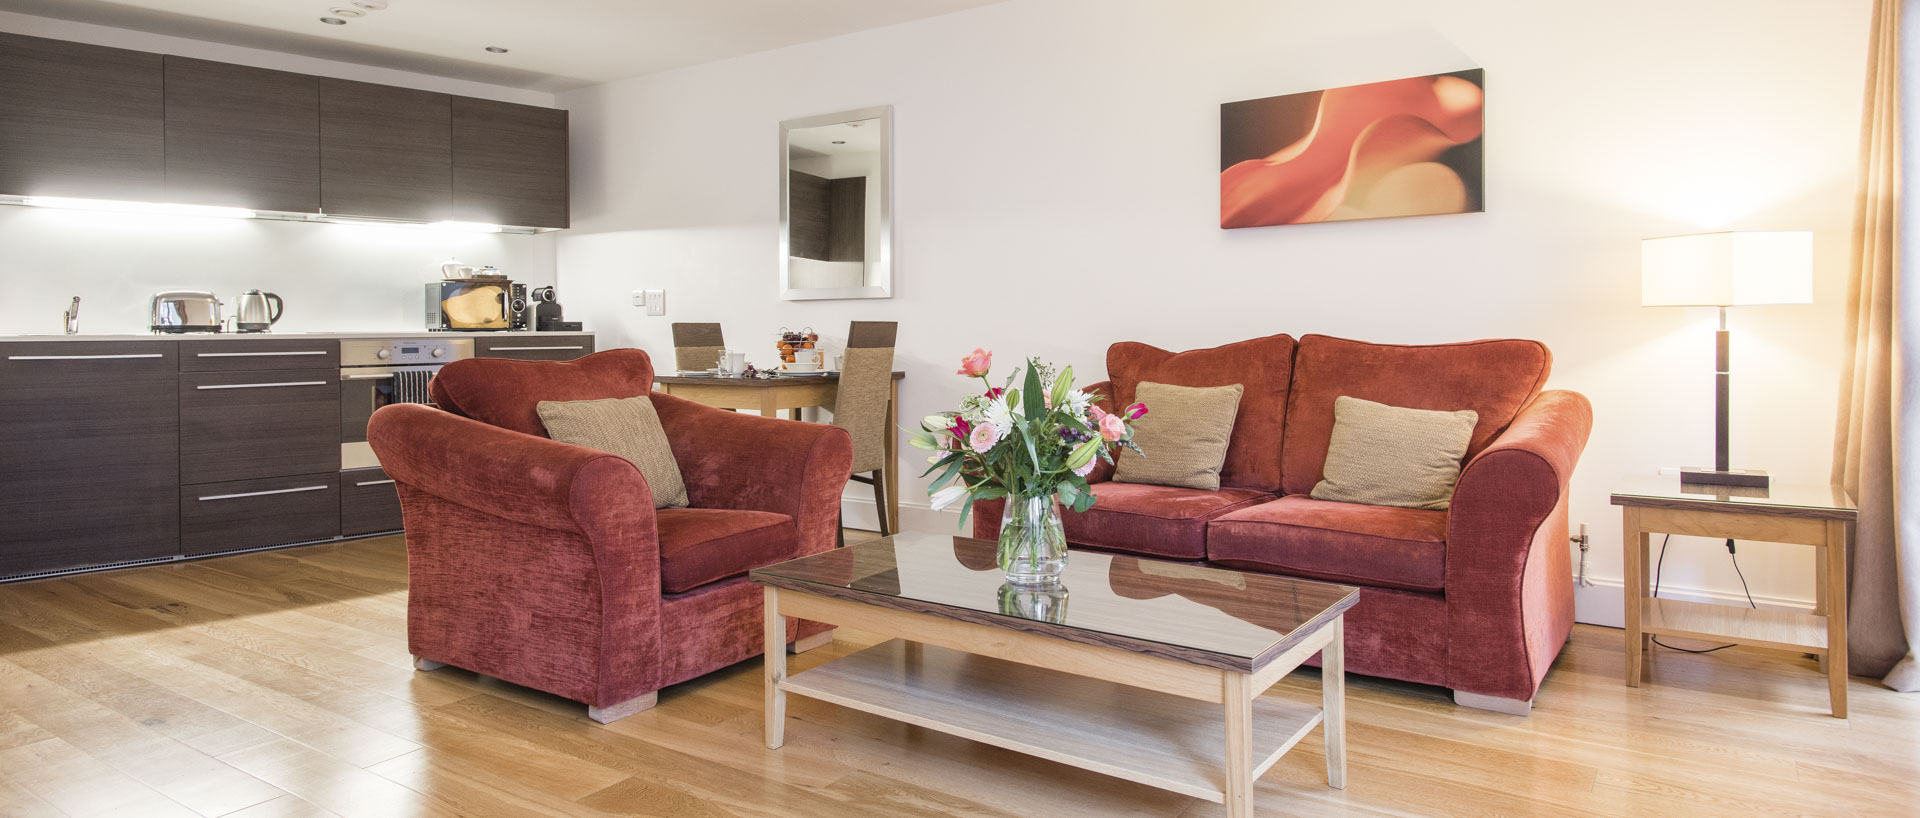 Bristol Serviced Apartments Premier Suites Plus Bristol Cabot Circus